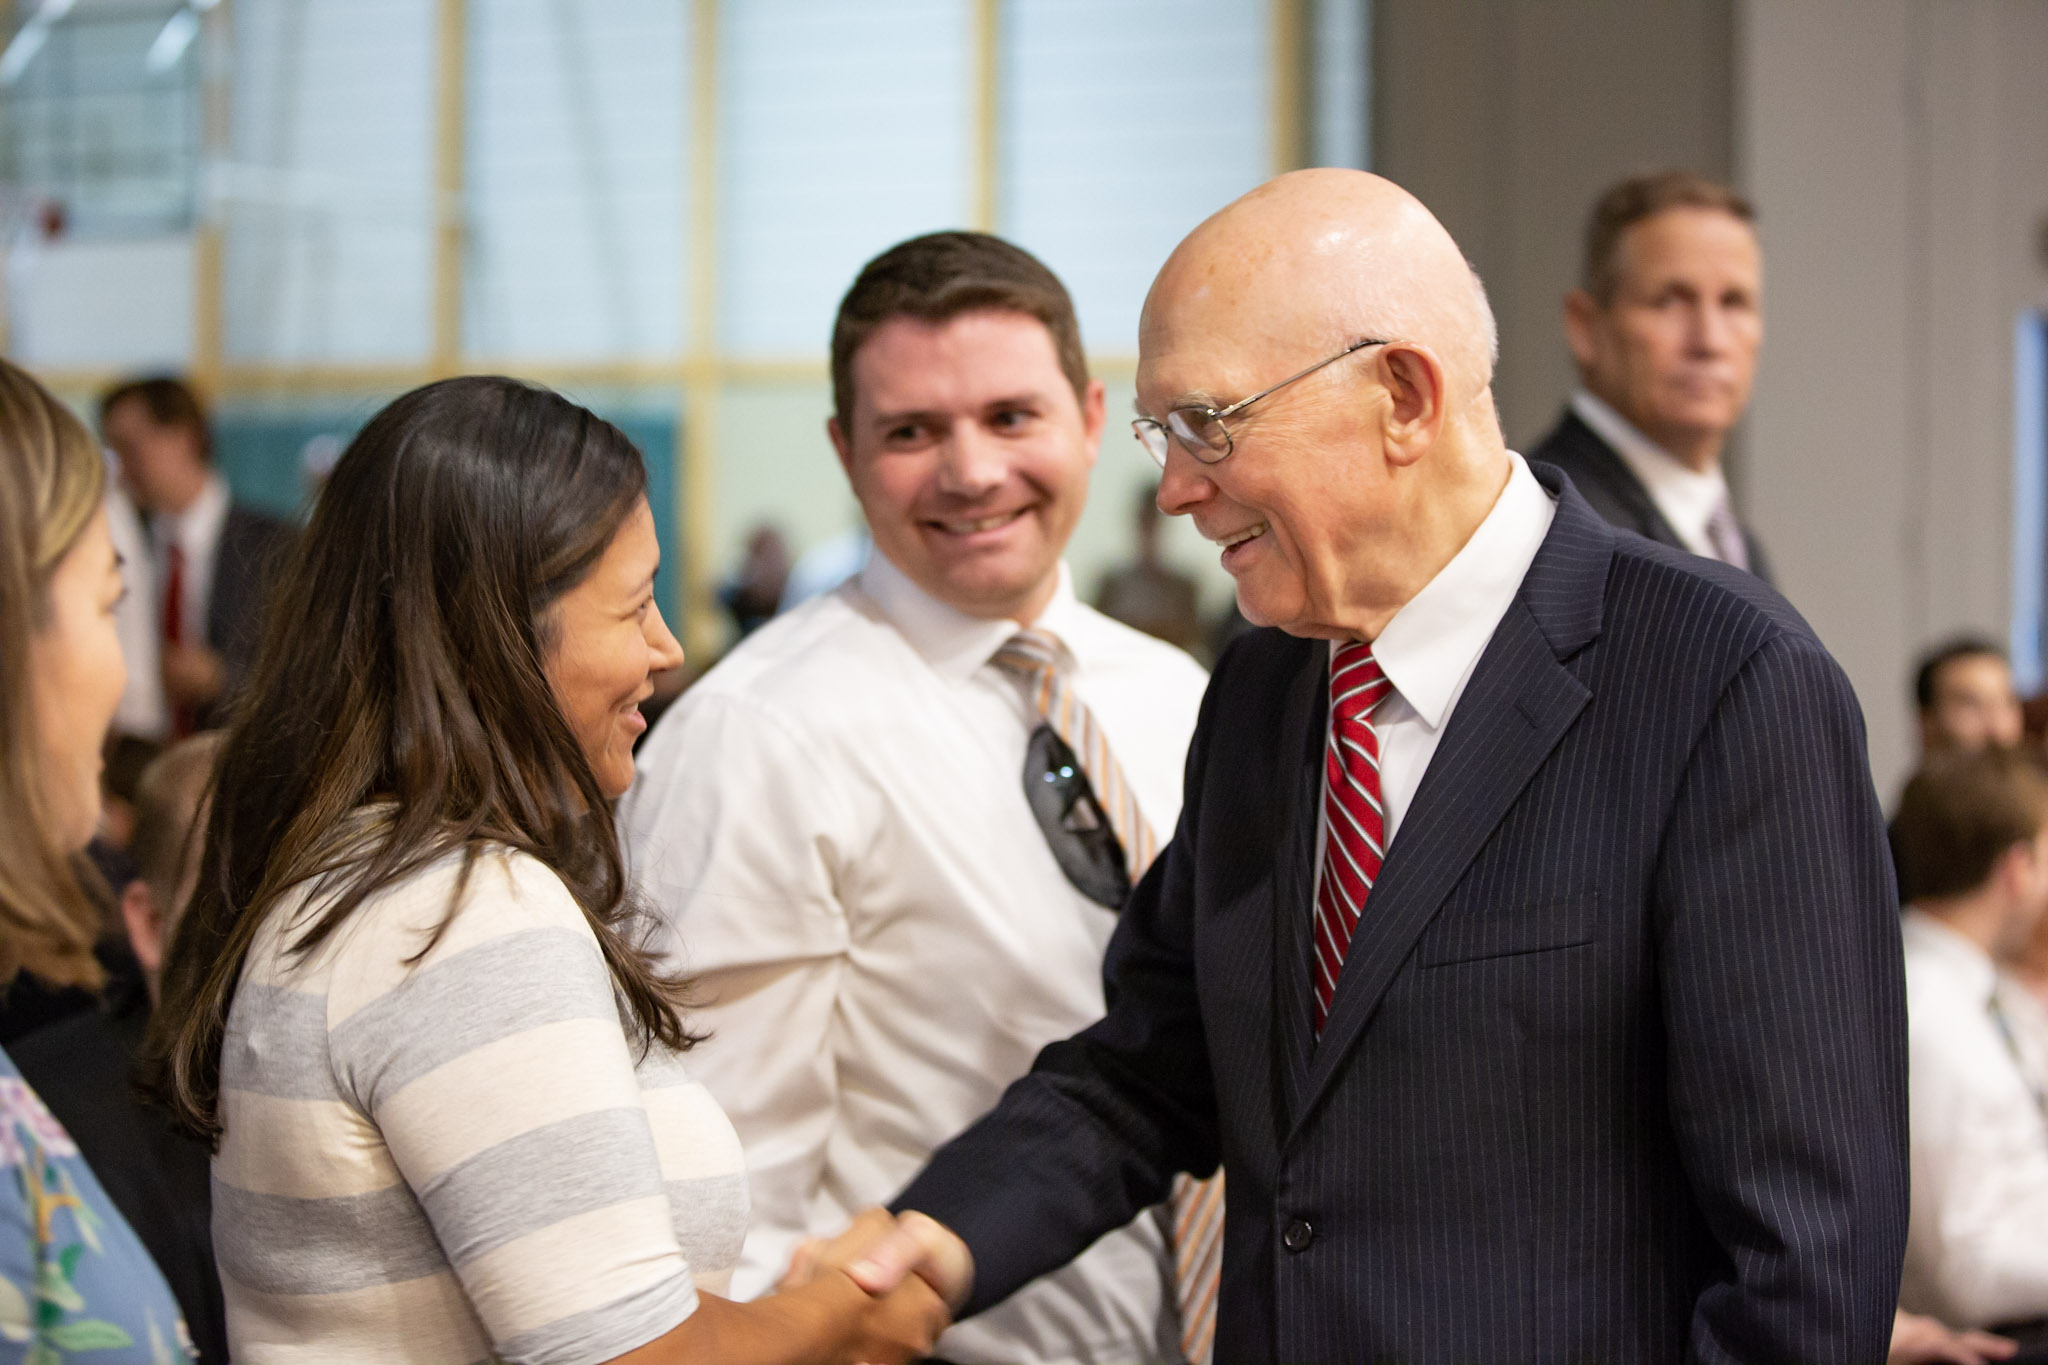 President Dallin H. Oaks, first counselor in the First Presidency, greets members of a capacity congregation of young married couples from nine stakes in the Los Angeles area before a devotional, held in the Los Angeles California Santa Monica Stake Center on Friday, Aug. 24, 2018.